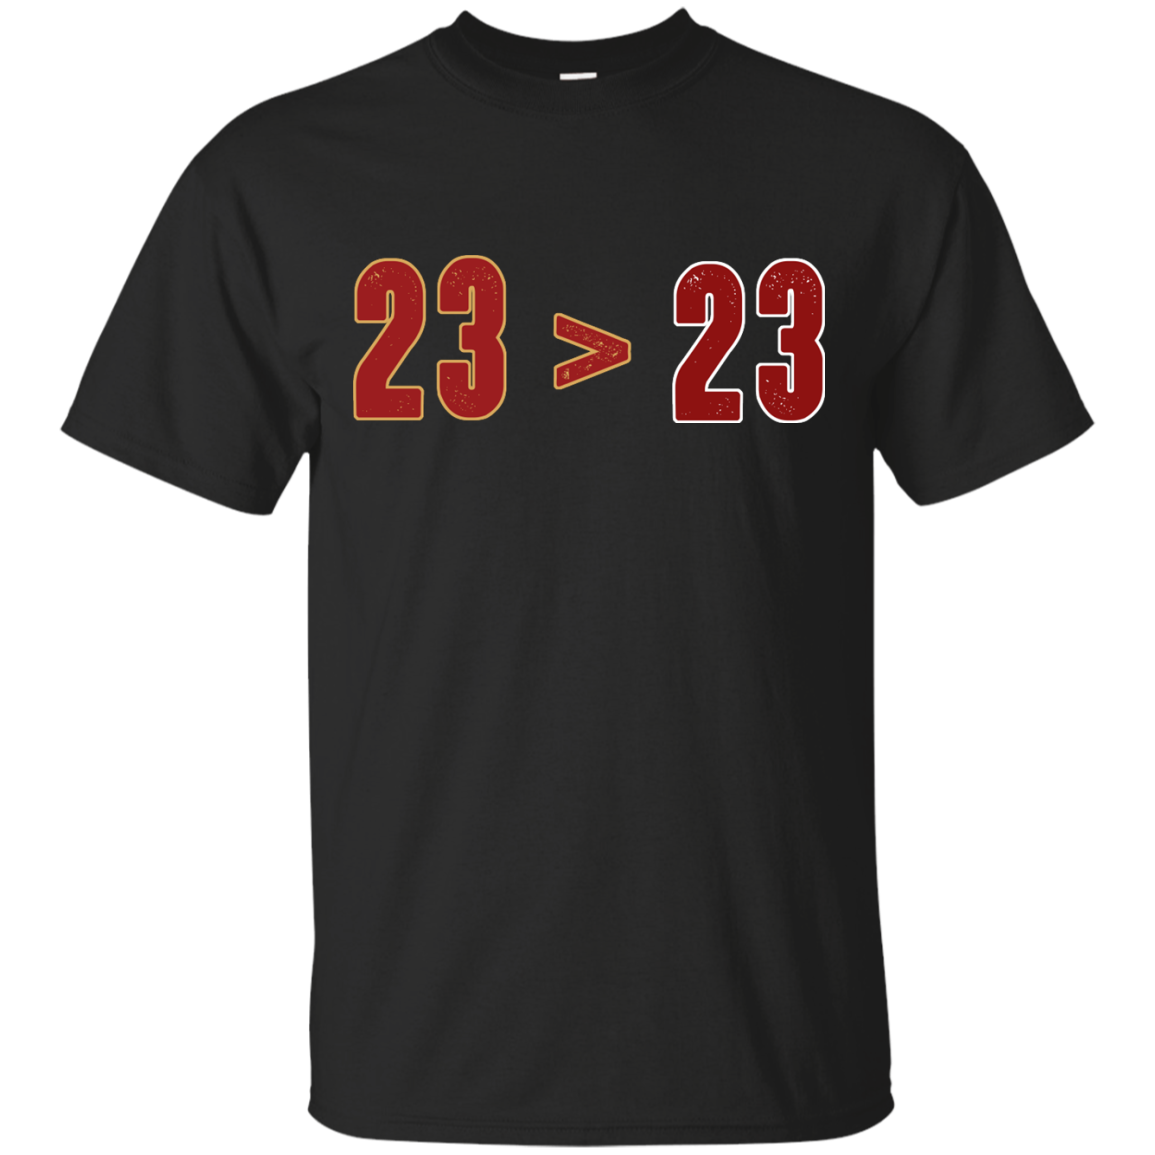 23 Greater than 23 T-shirt, LeBron Greater Than Jordan T-shirt,Tank top & Hoodies